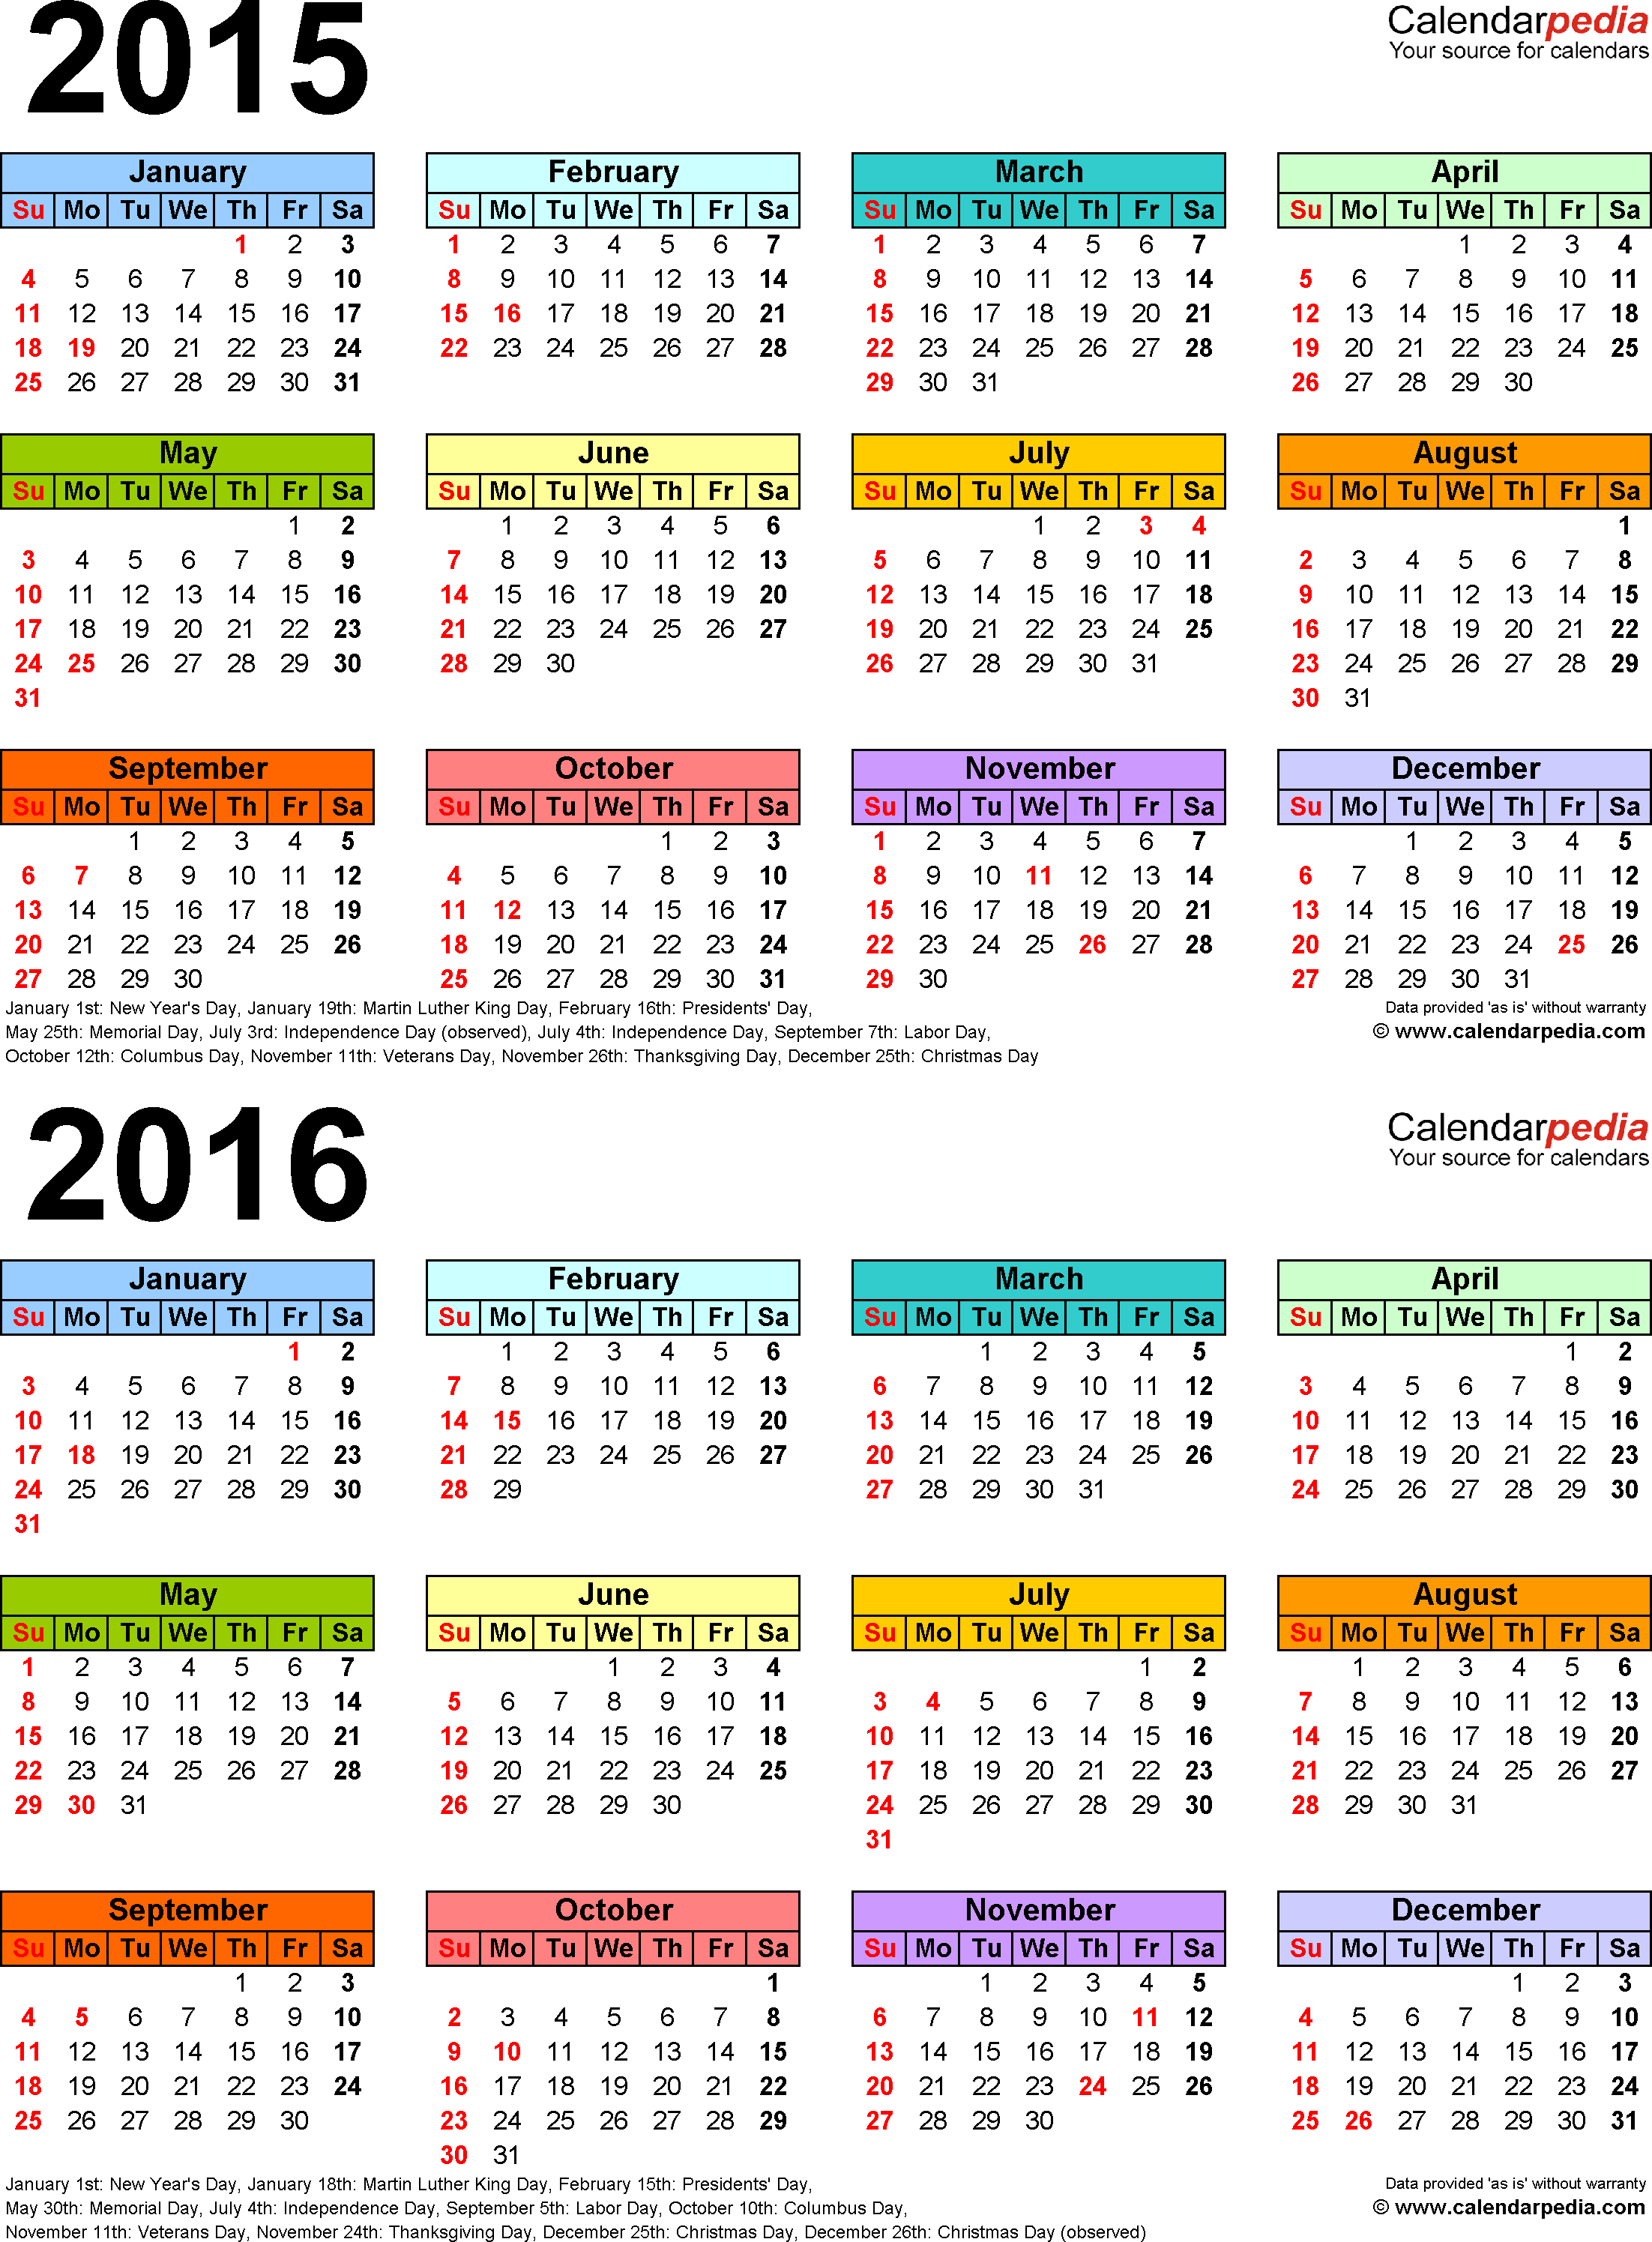 Download Template 4: PDF template for two year calendar 2015/2016 (portrait orientation, 1 page, years stacked, multi-colored)